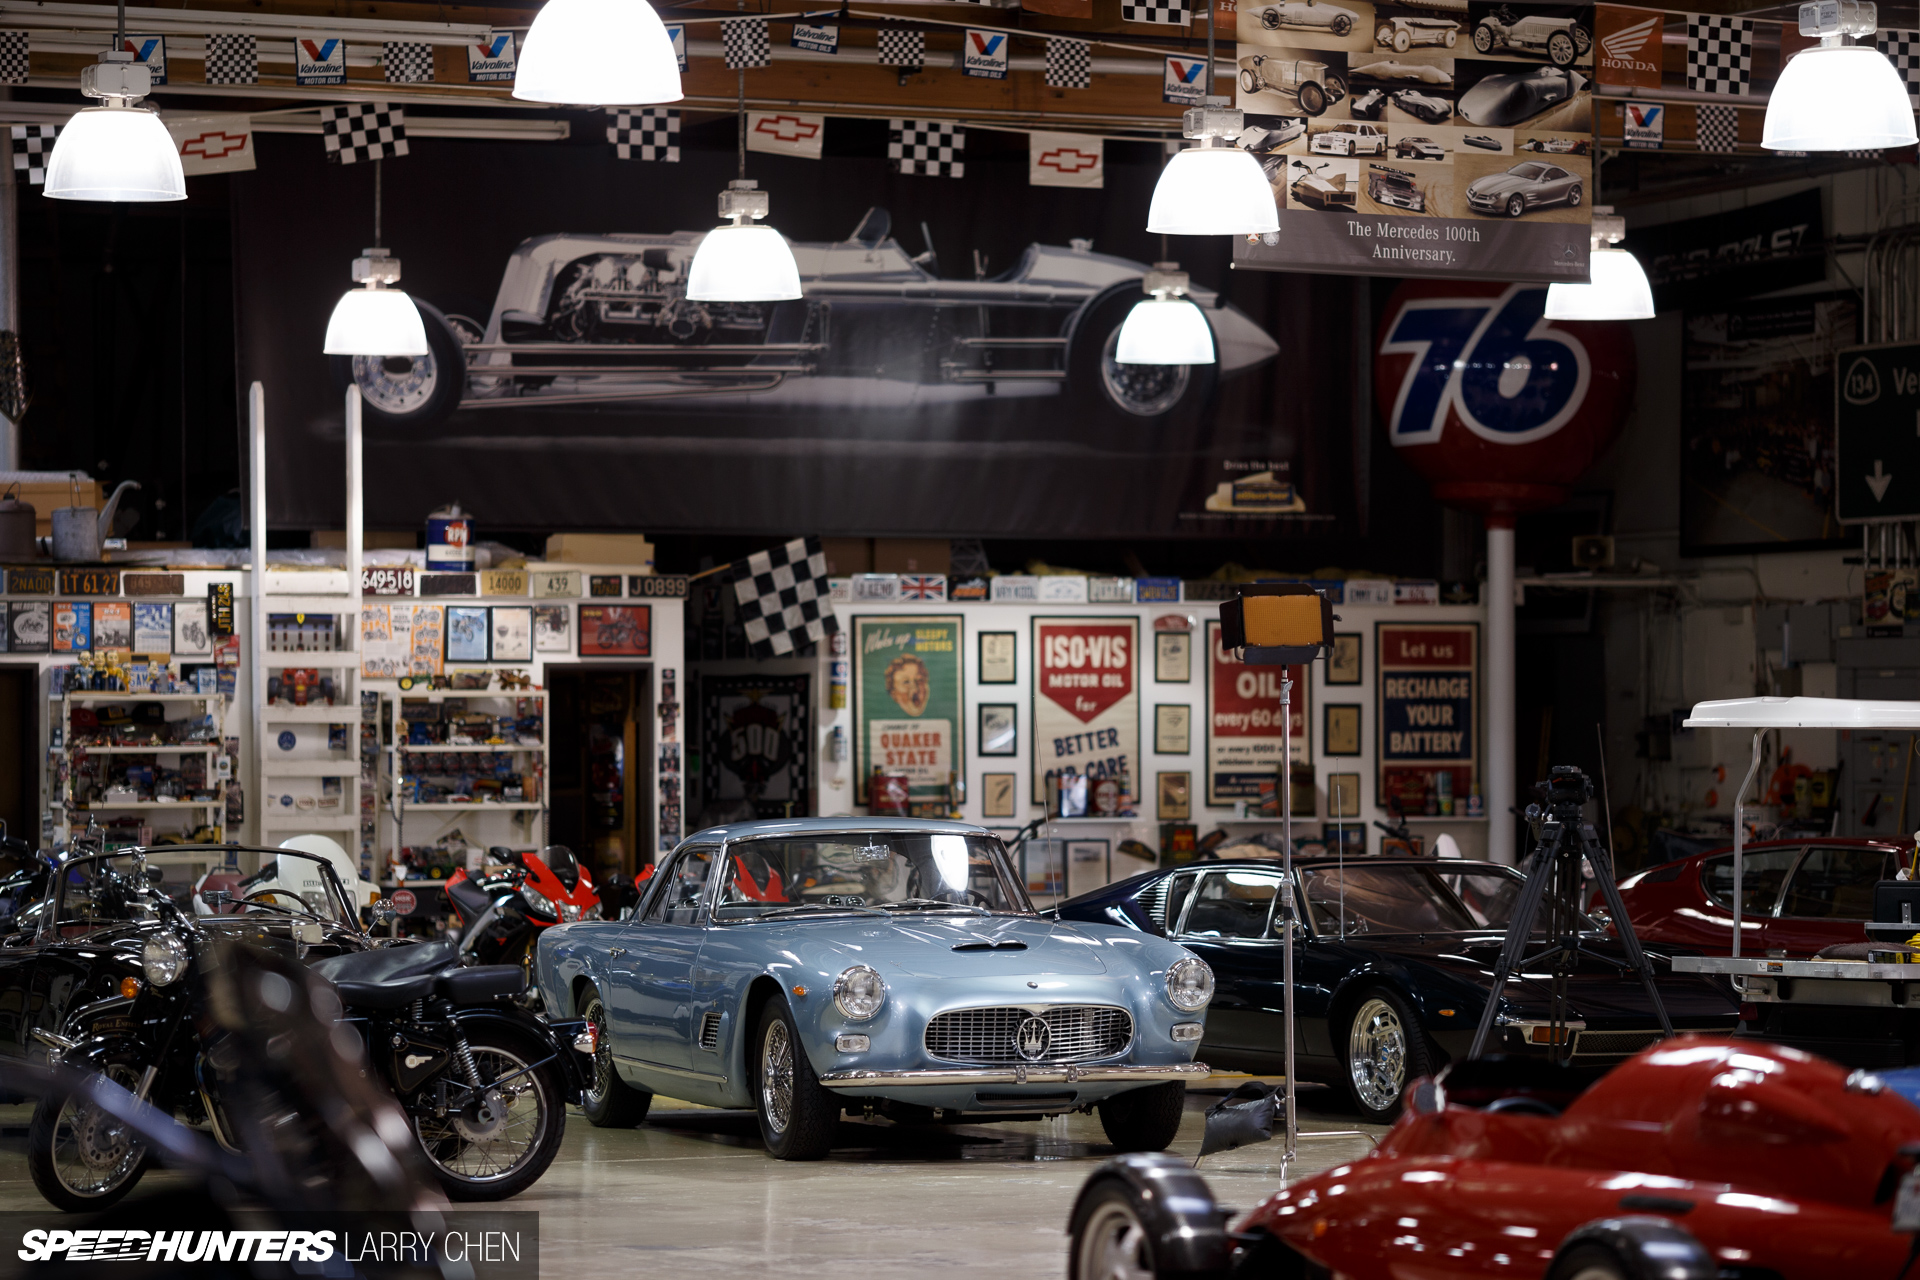 The ultimate hobby shop jay leno 39 s garage speedhunters for Garage with shop